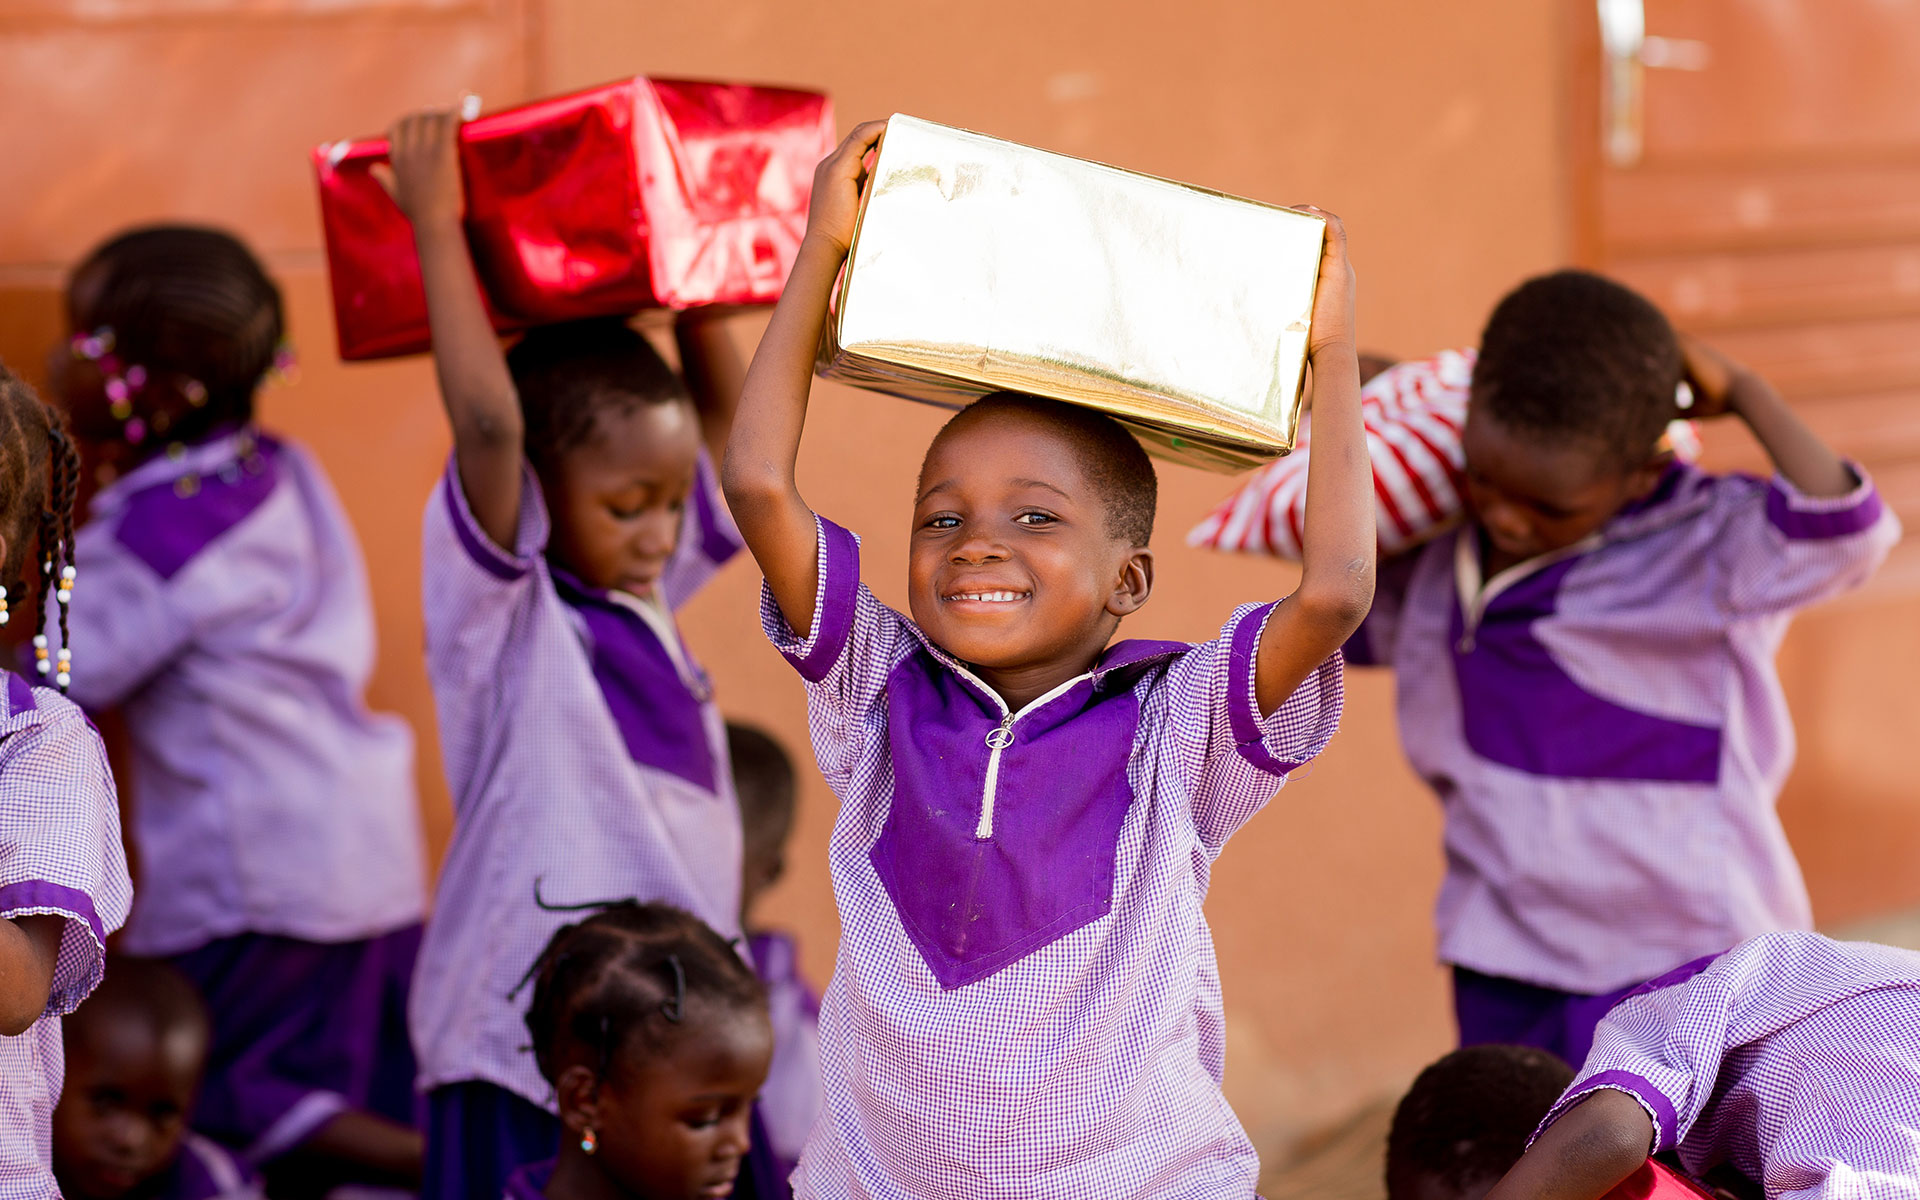 A child in Burkina Faso smiles as he receives a Christmas gift